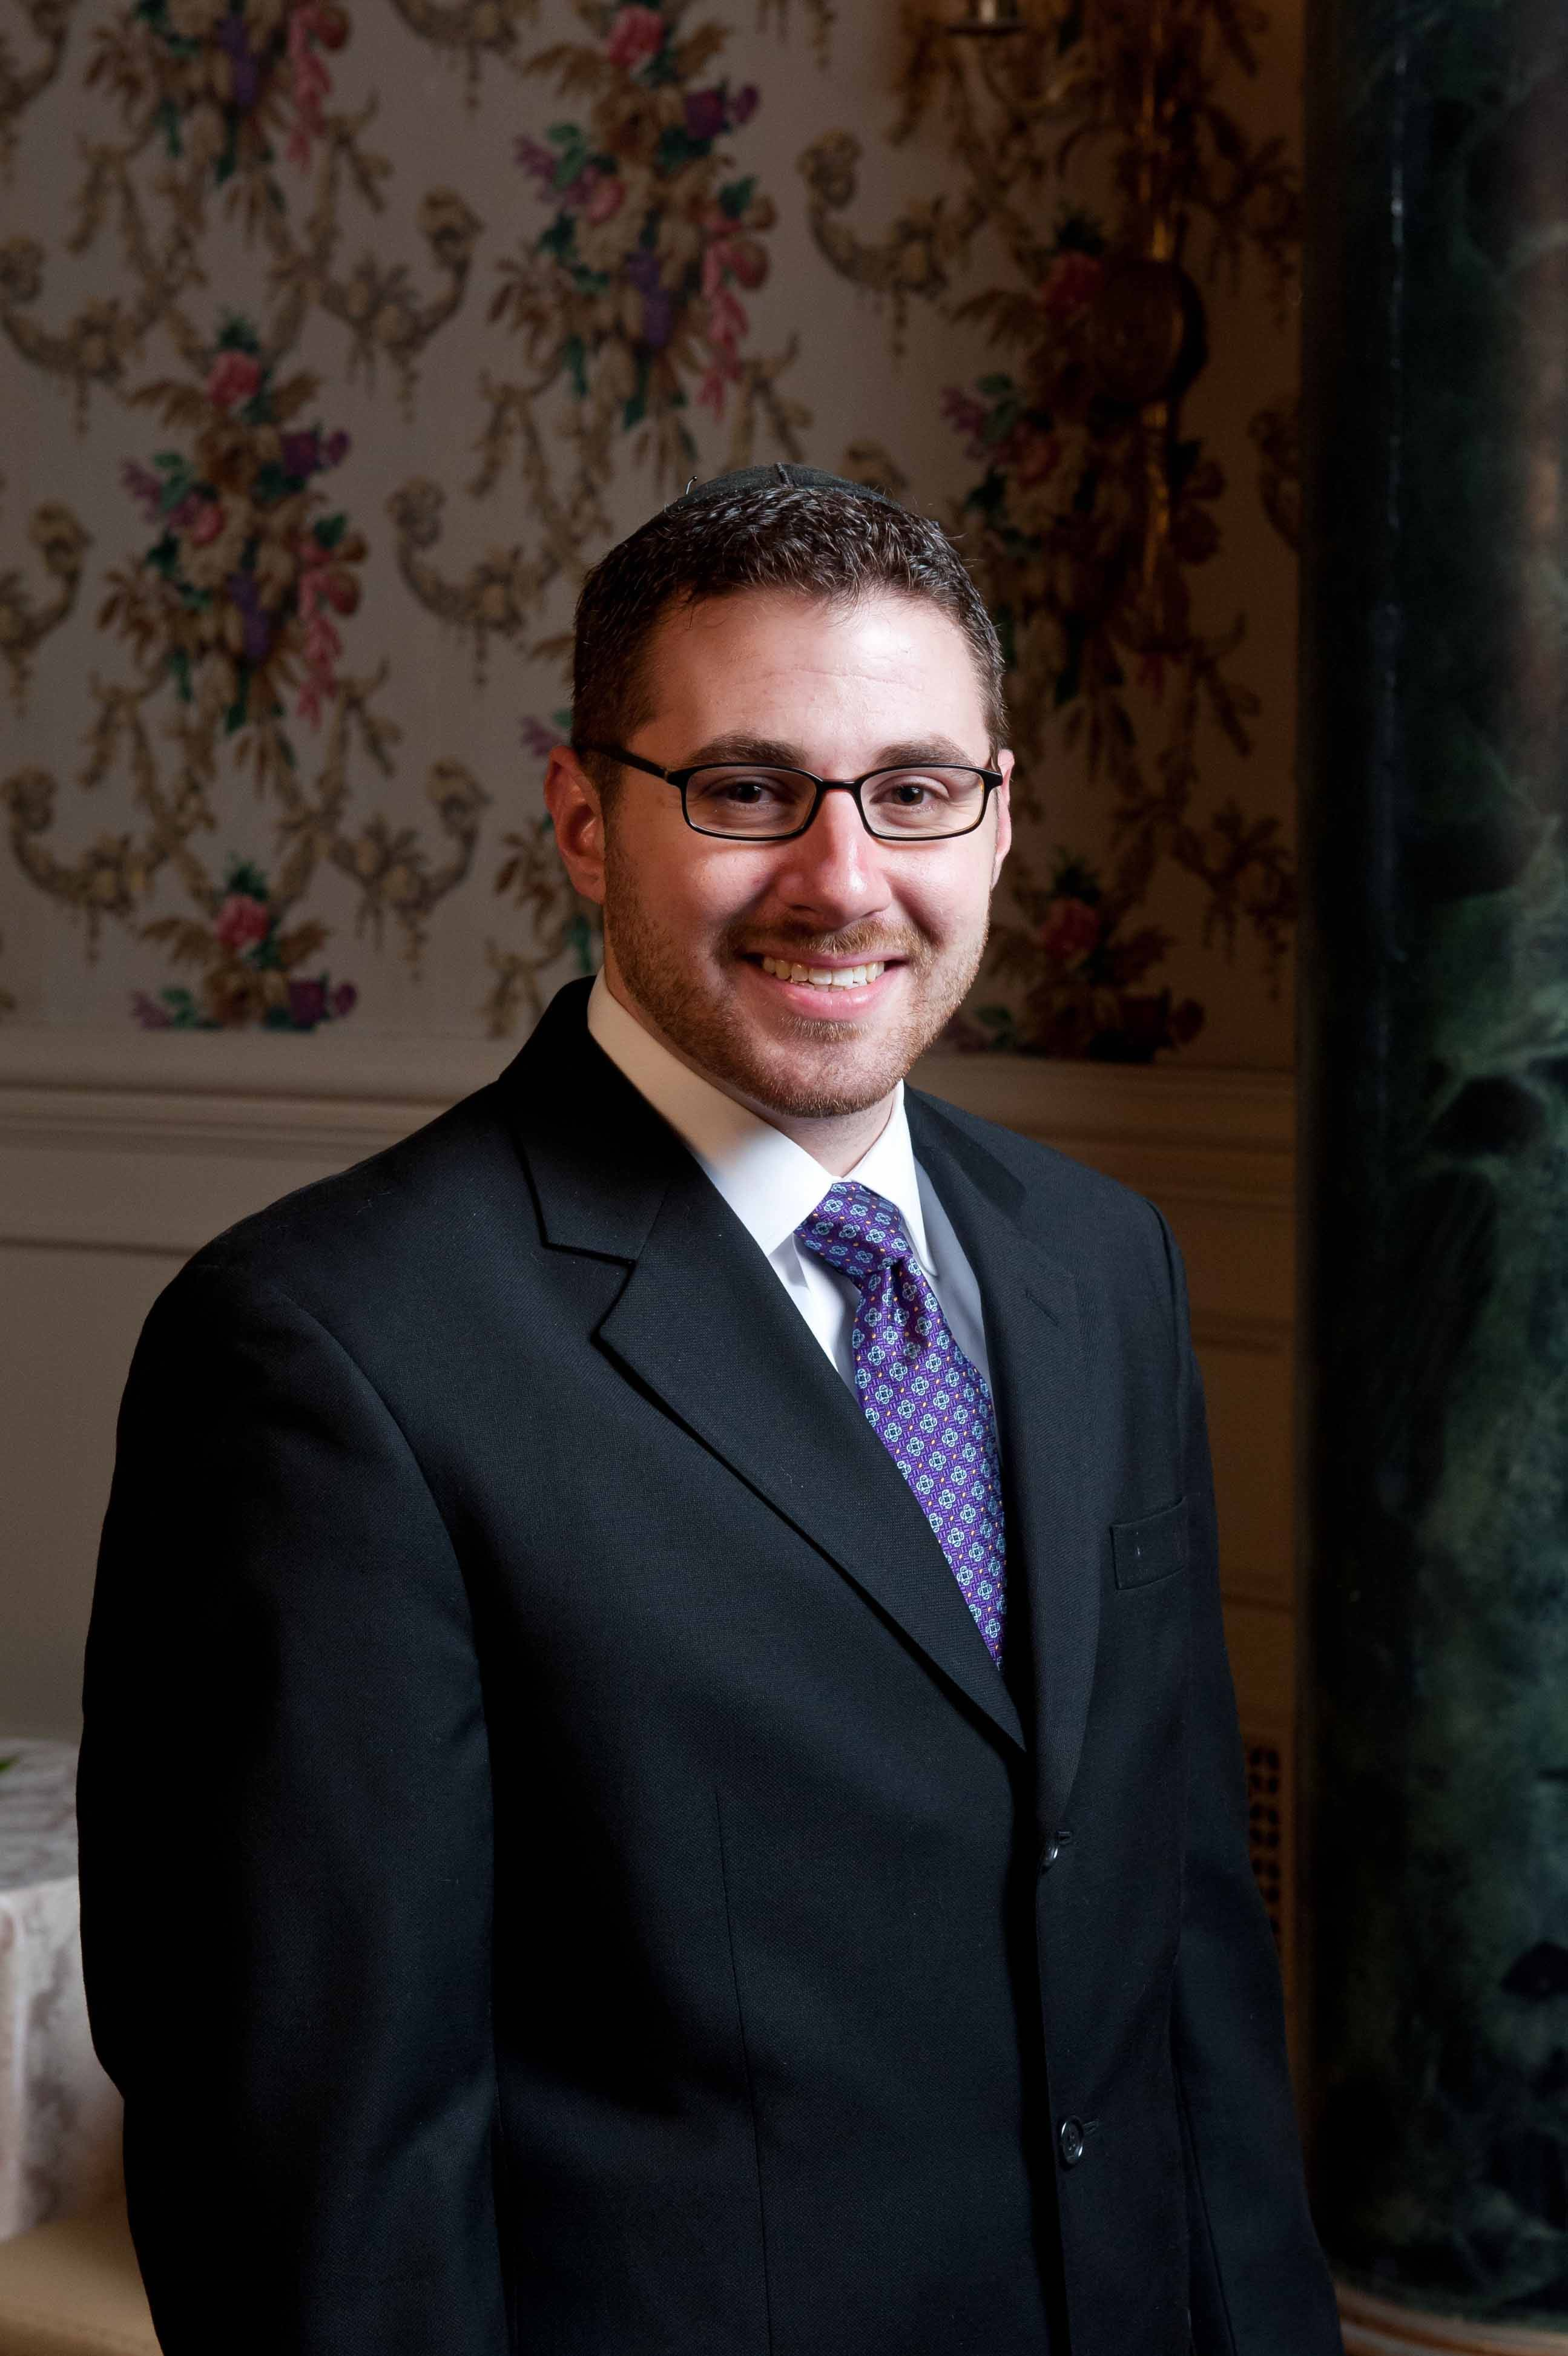 Rabbi Aaron Braun will be Northbrook Community Synagogue's spiritual leader beginning July 1, 2012.